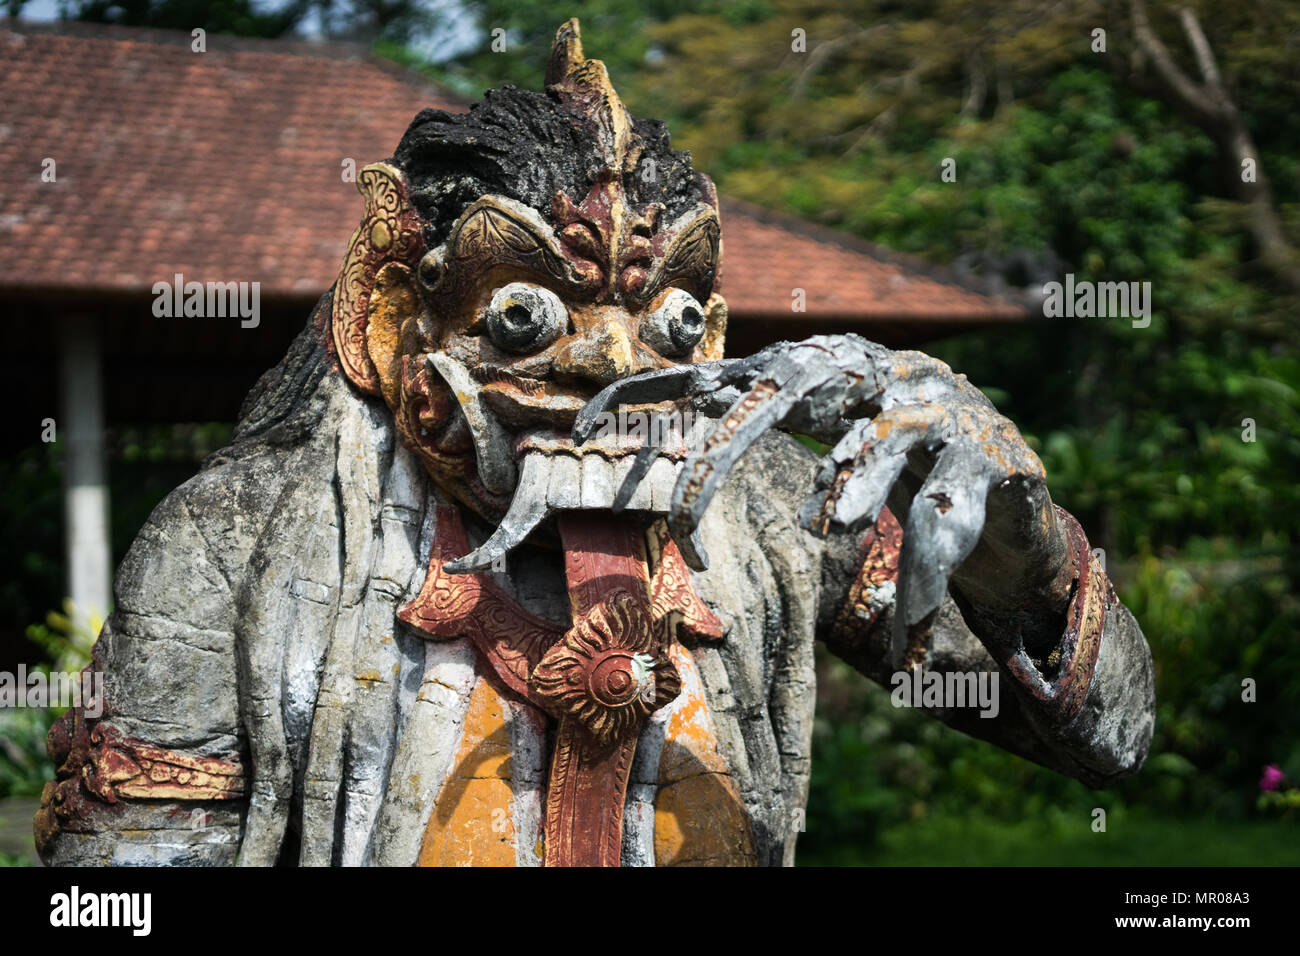 Frightening hindu wooden statue found at the tirta gangga water palace in Karangasem, Bali, Indonesia (17.05.2018) - Stock Image